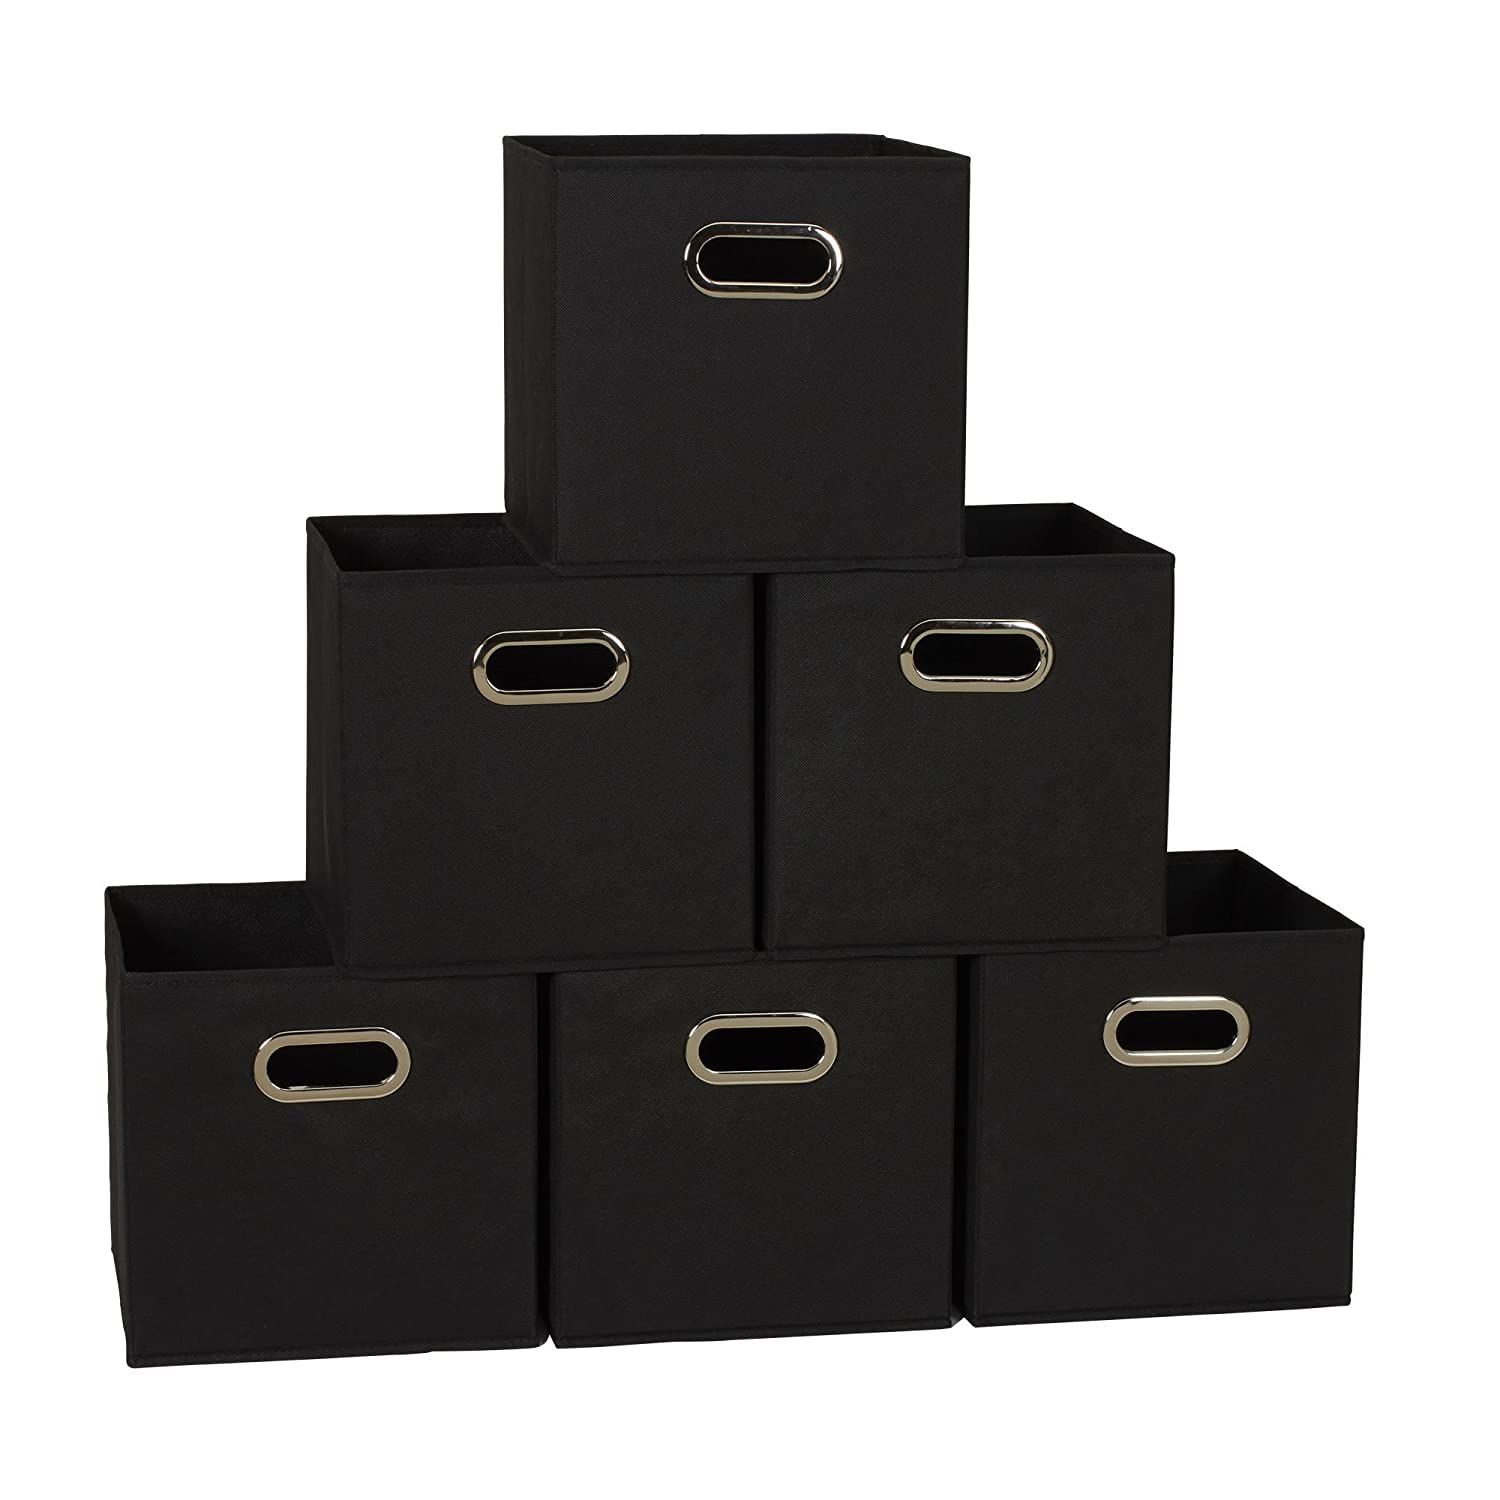 Household Essentials 80-1 Foldable Fabric Storage Bins | Set Of 6 Cubby Cubes With Handles | Black